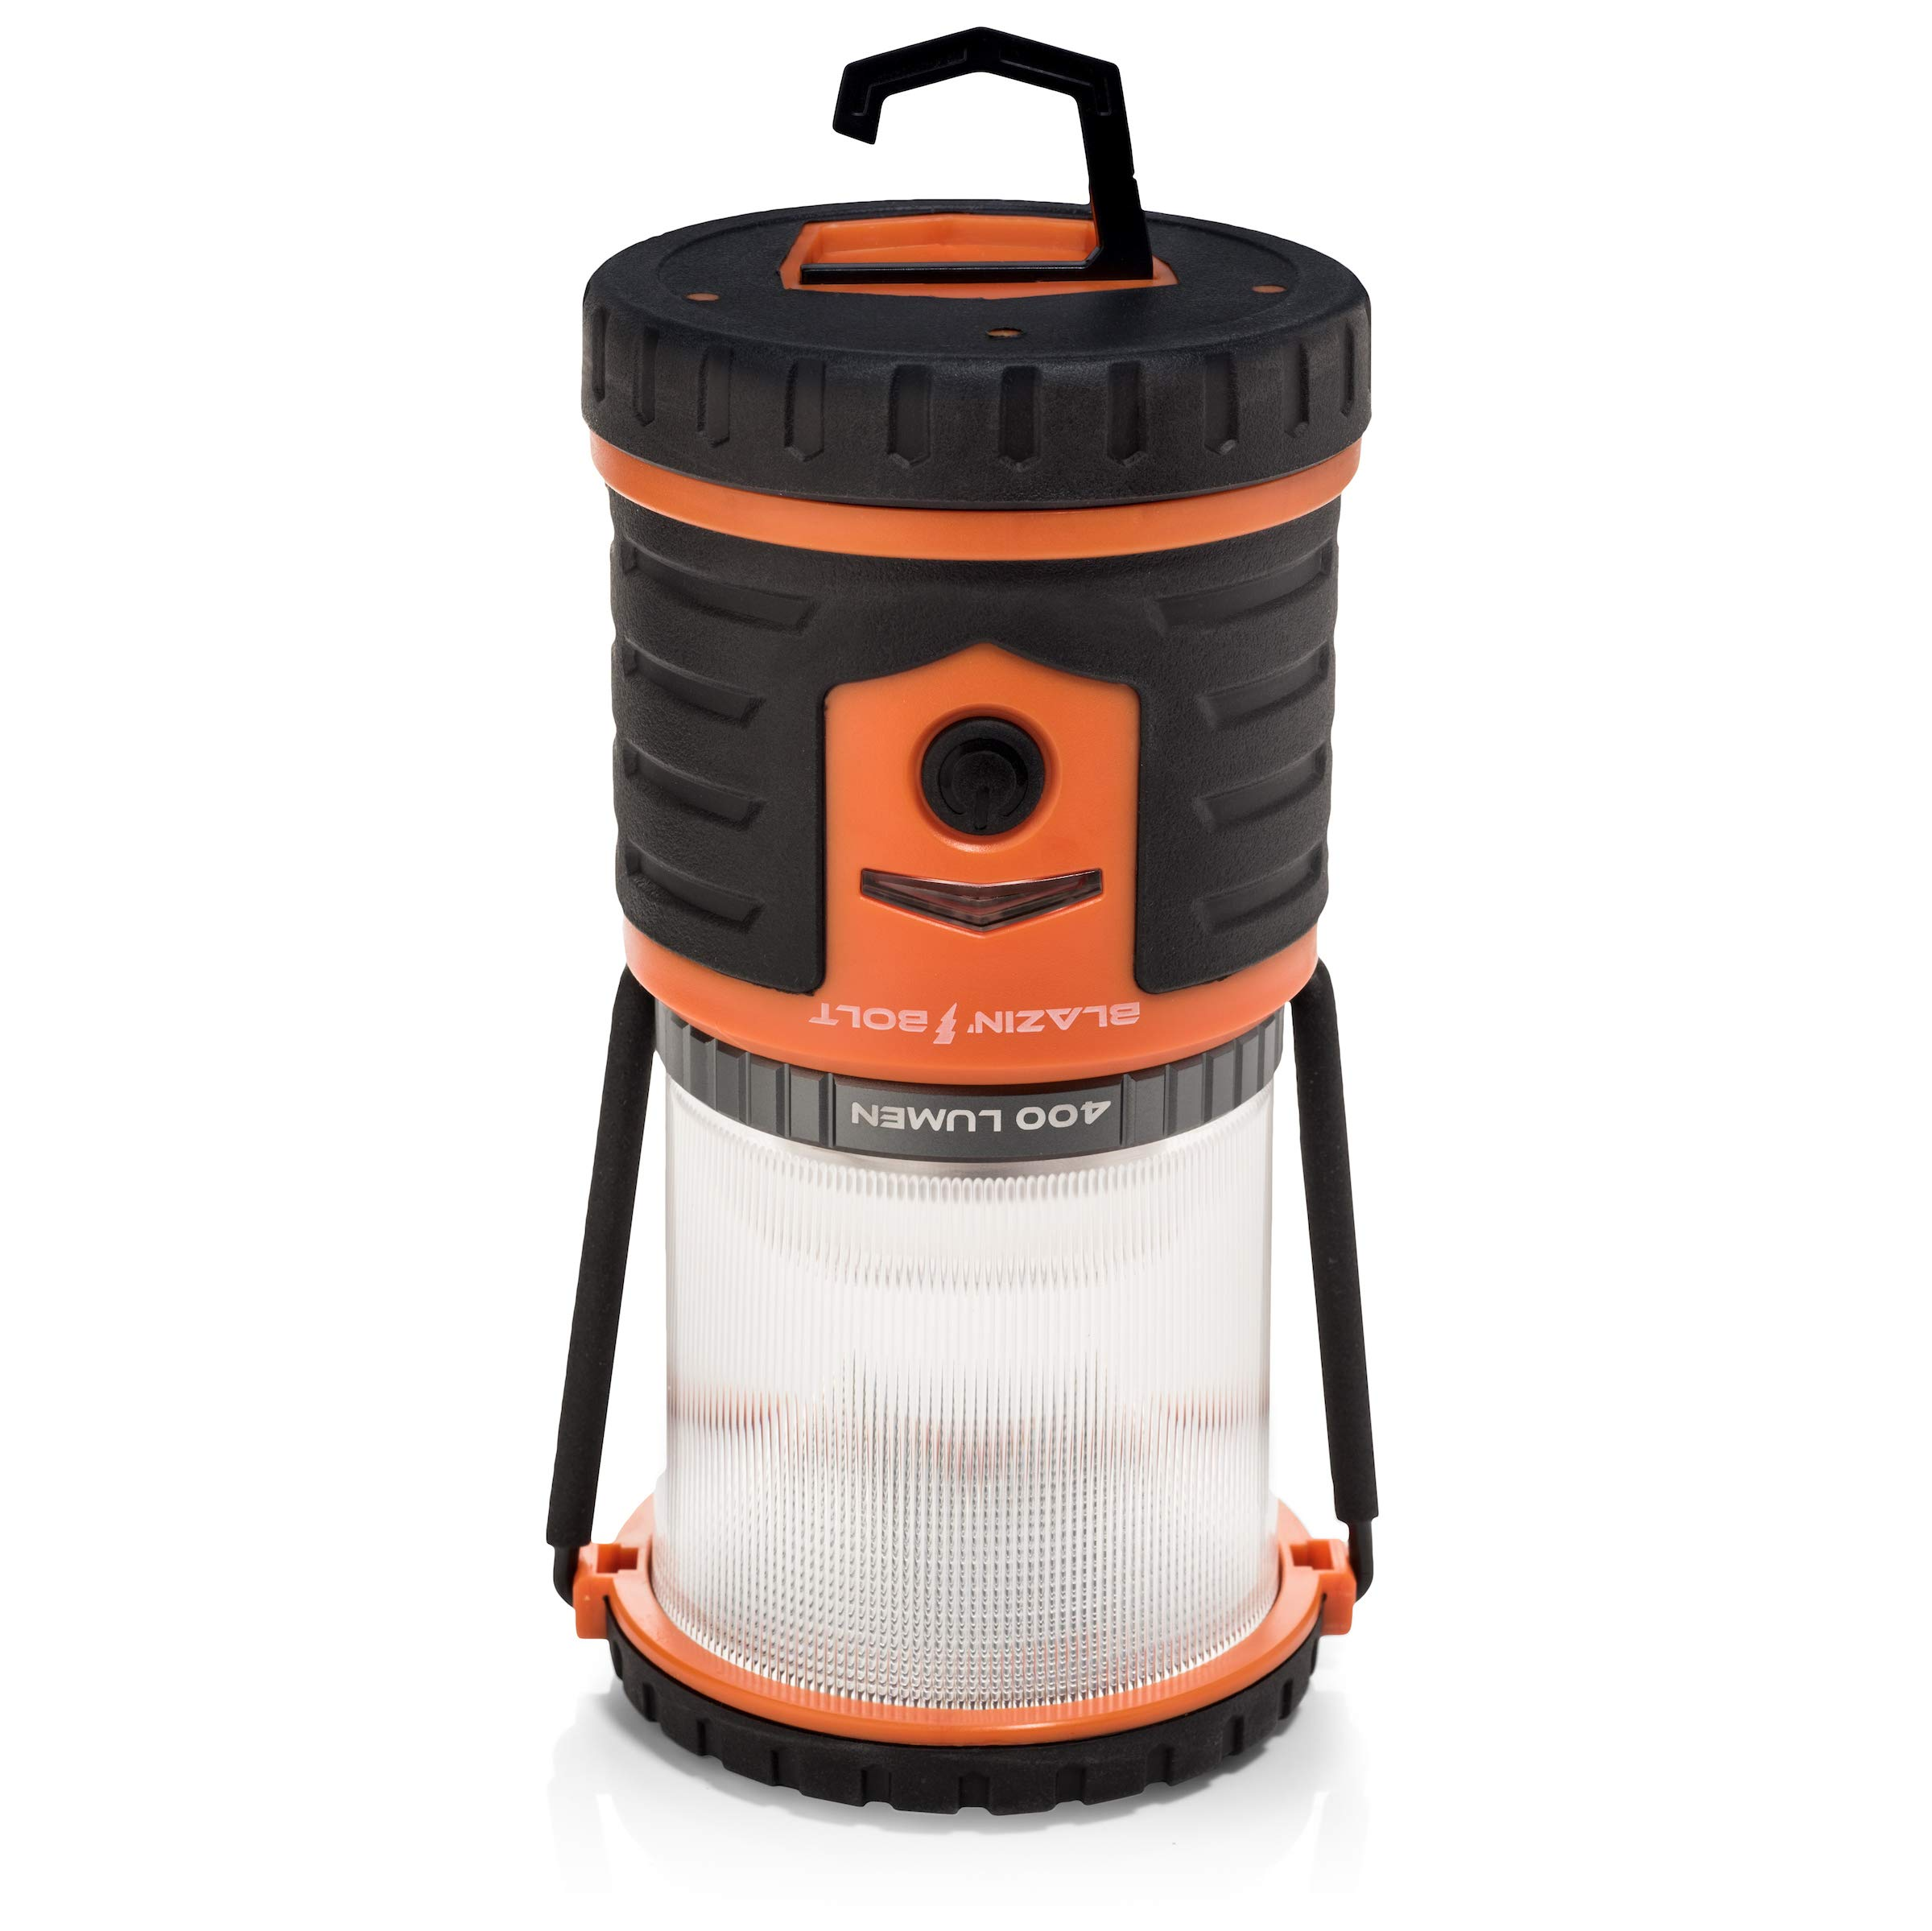 Brightest Rechargeable Lantern LED | Hurricane, Blackout, Storm | Power Bank Light | 400 Hour Runtime (Orange) by Blazin' Bison (Image #4)